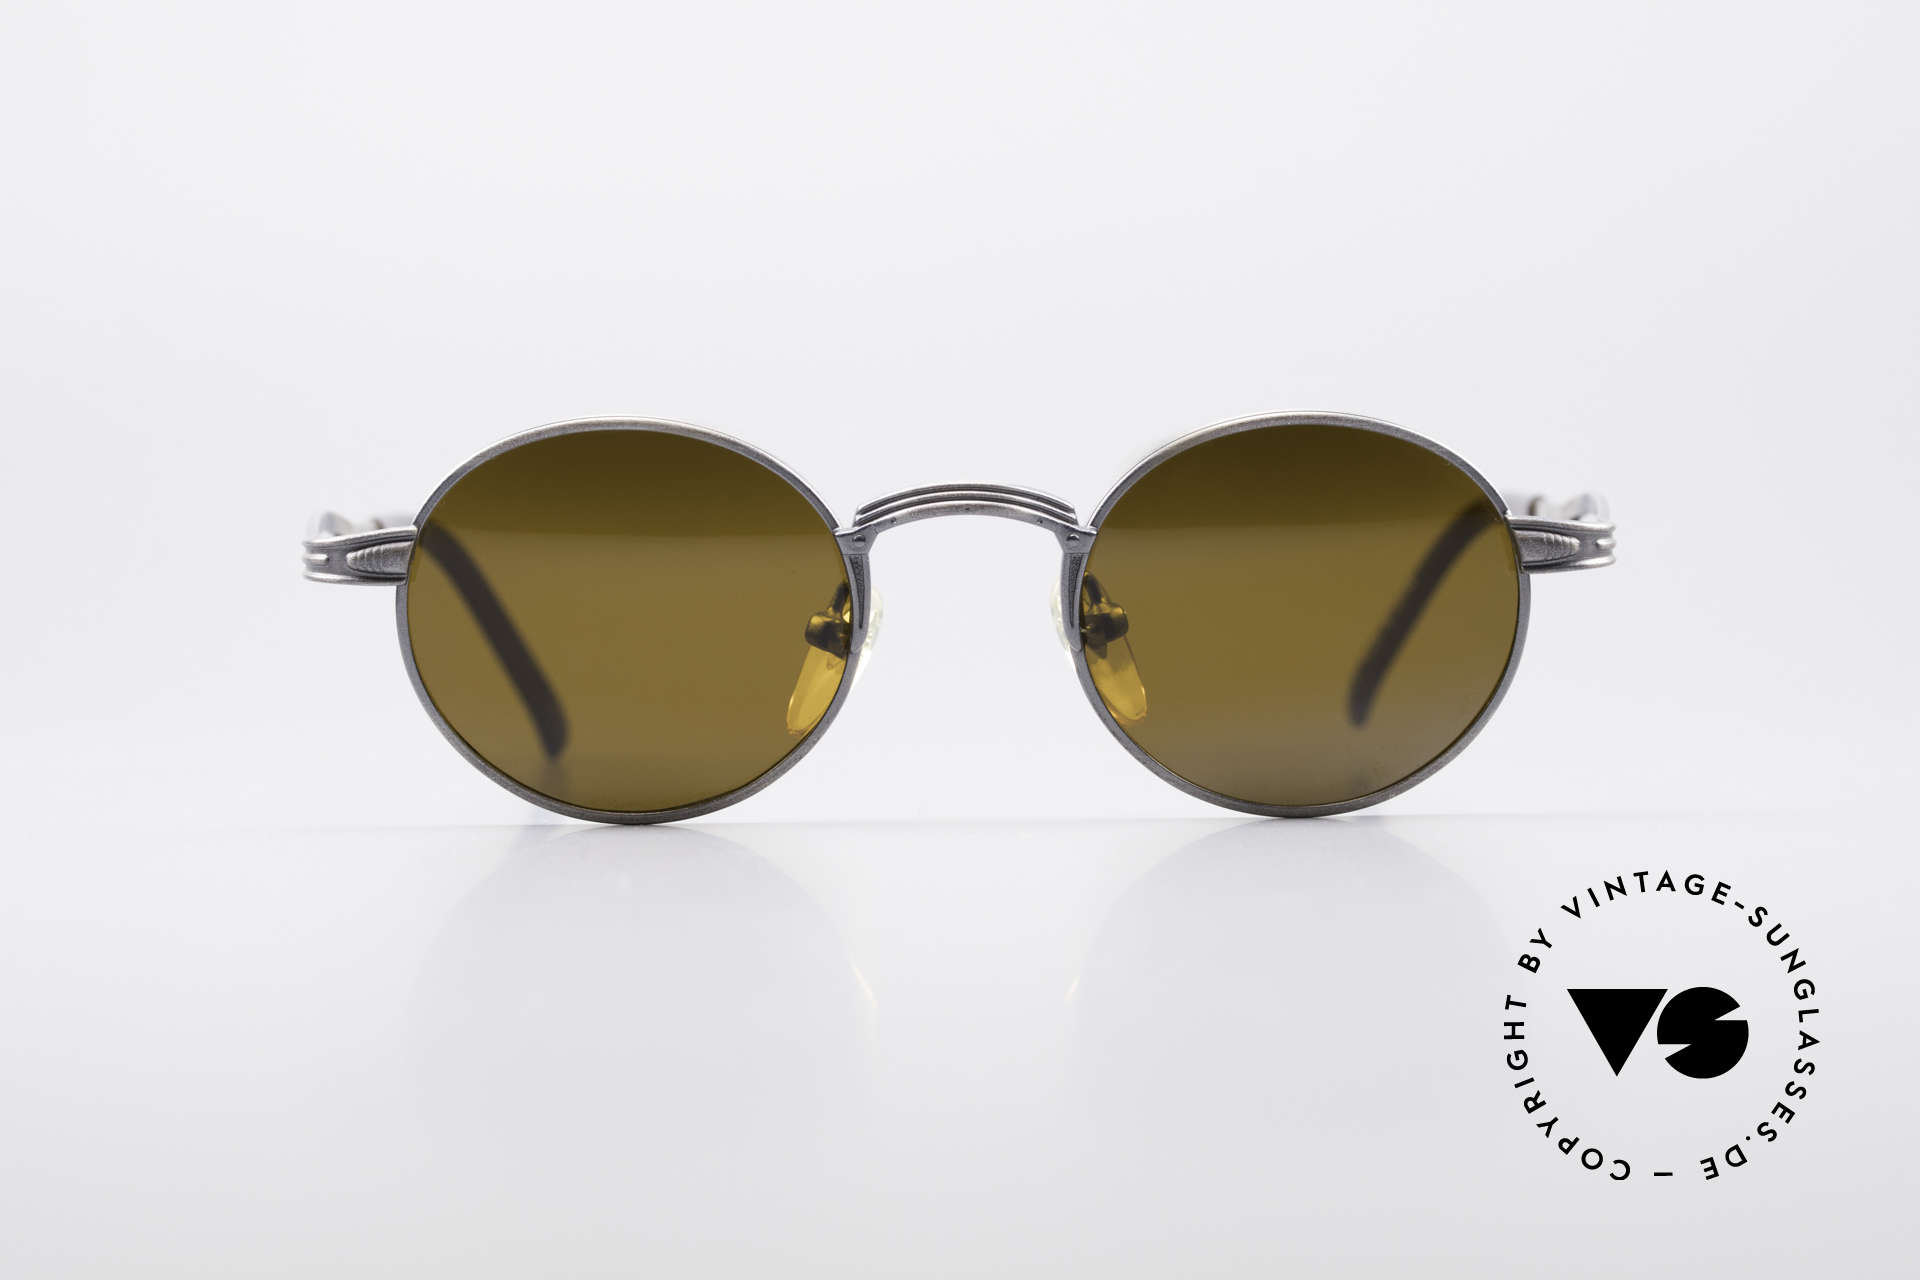 a37e83960 You may also like these glasses. Jean Paul Gaultier 55-7106 Oval Vintage  Sunglasses Details